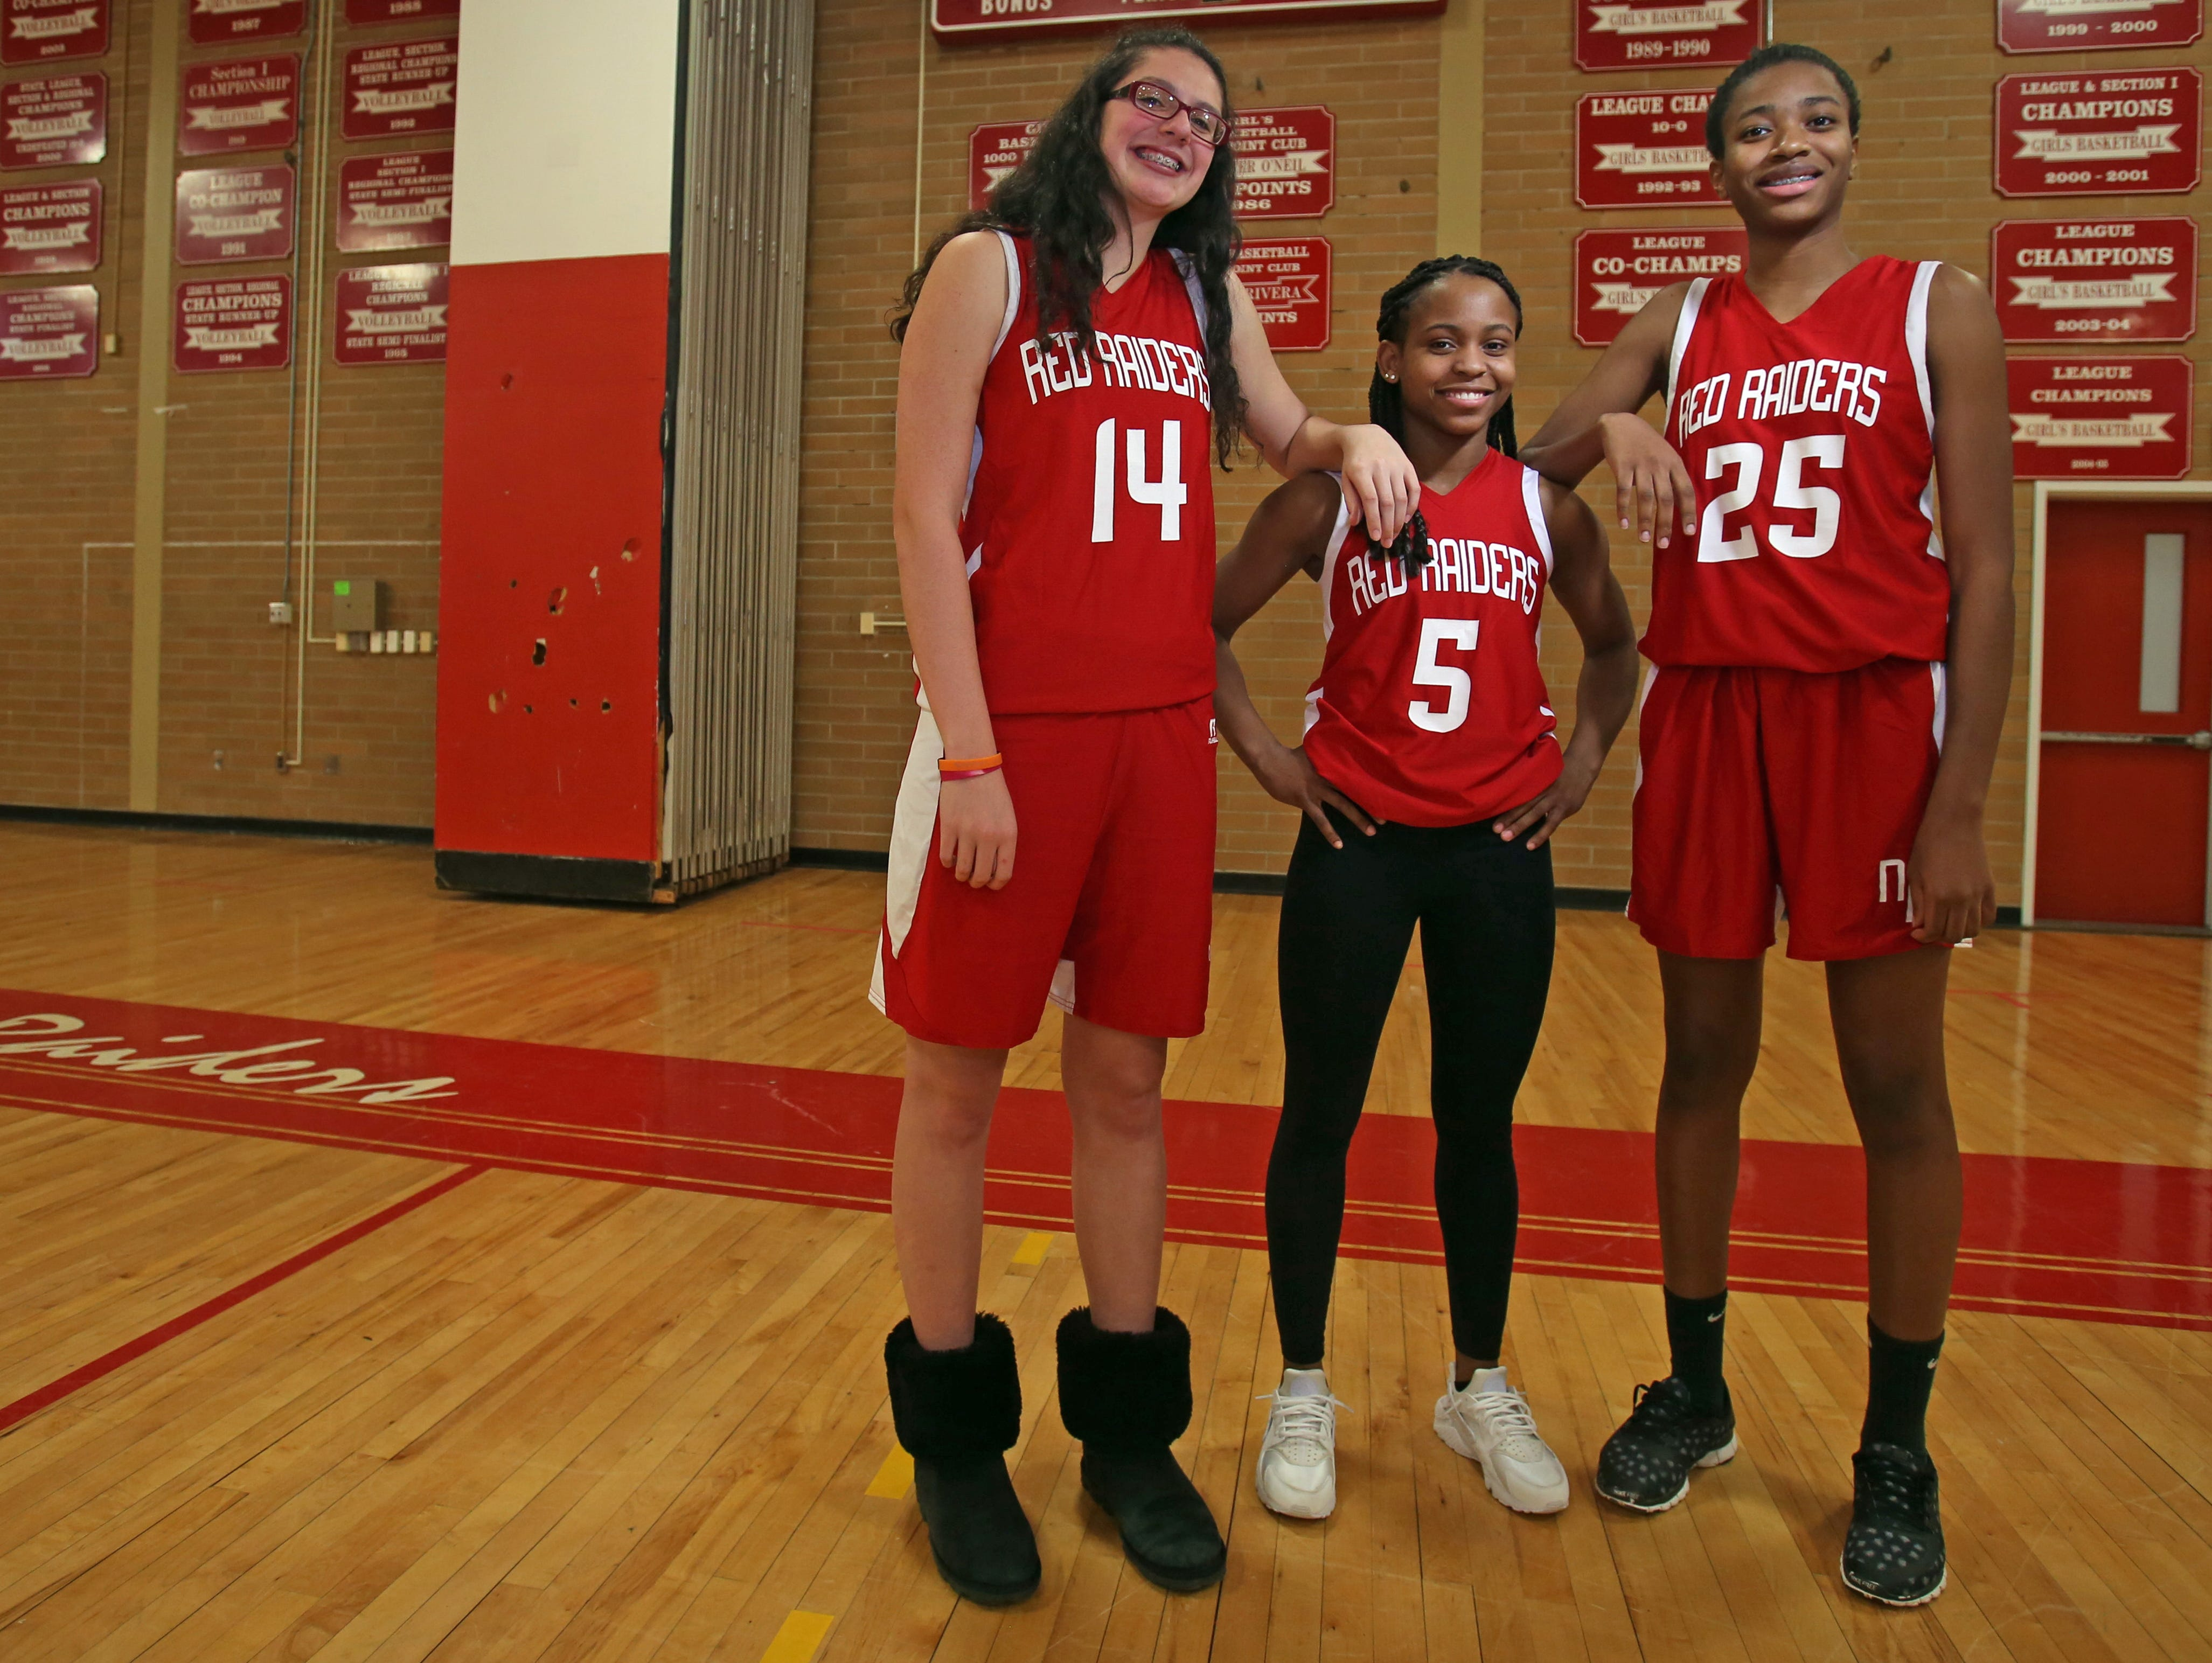 From left, North Rockland's Trinity Boescker, Gabby Cajou, and Pamela Miceus pose for a photo in gym at North Rockland High School in Thiells March 14, 2016.